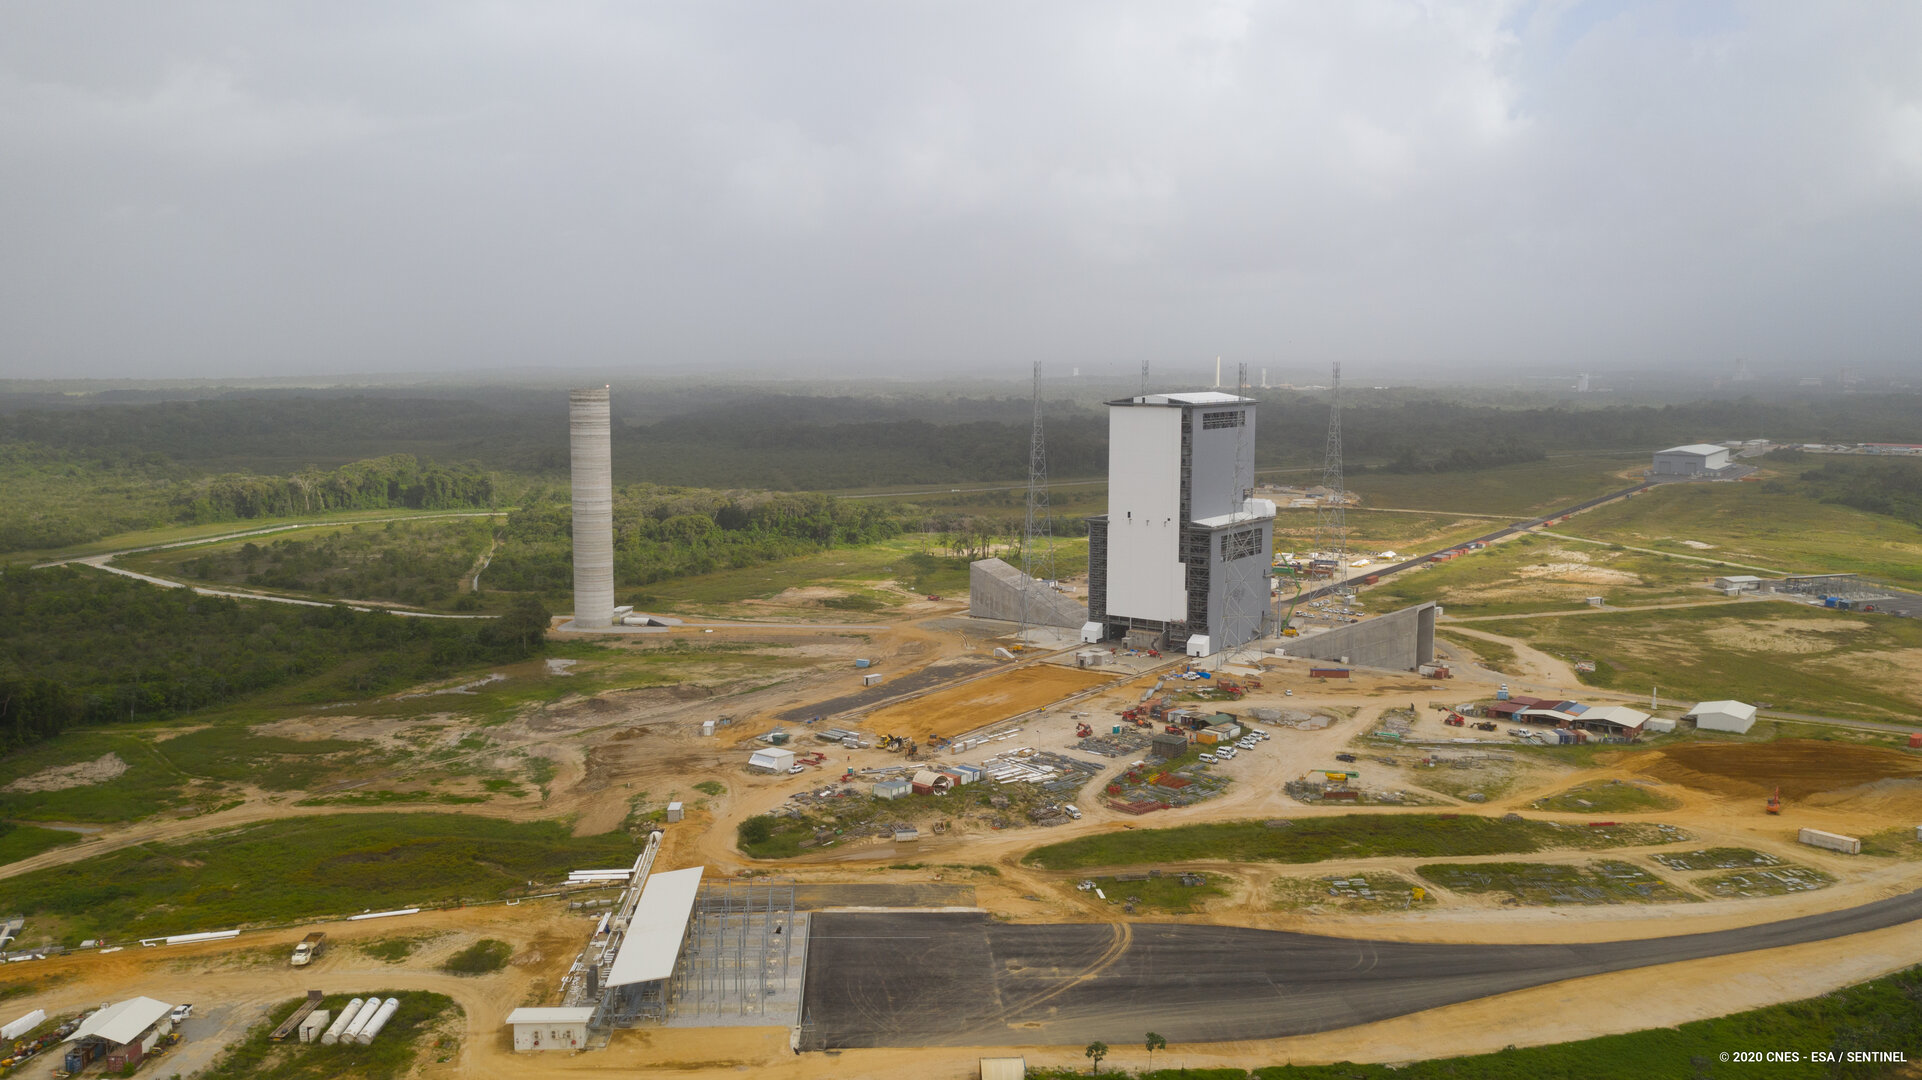 Ariane 6 launch complex at Europe's Spaceport